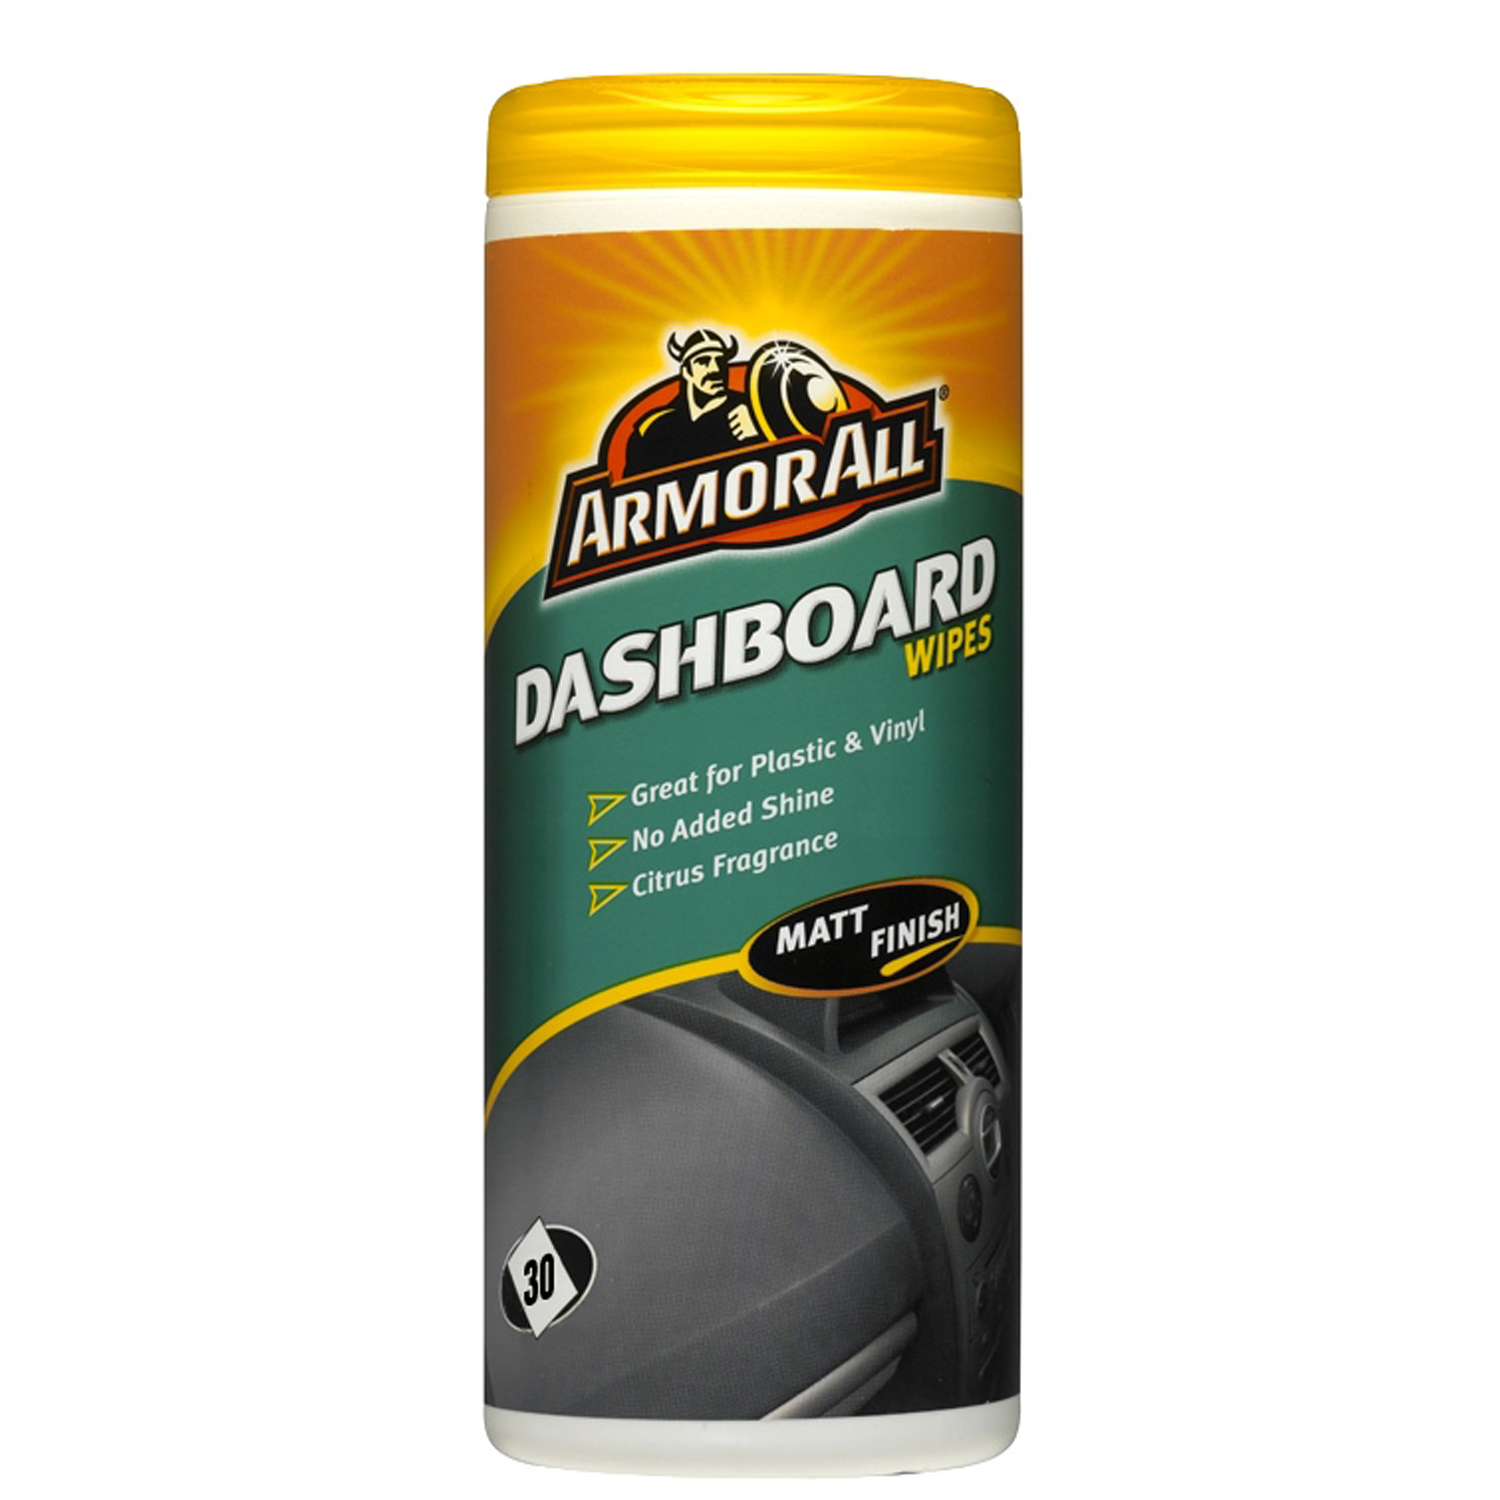 Image of Armoral 30 Dashboard Wipes